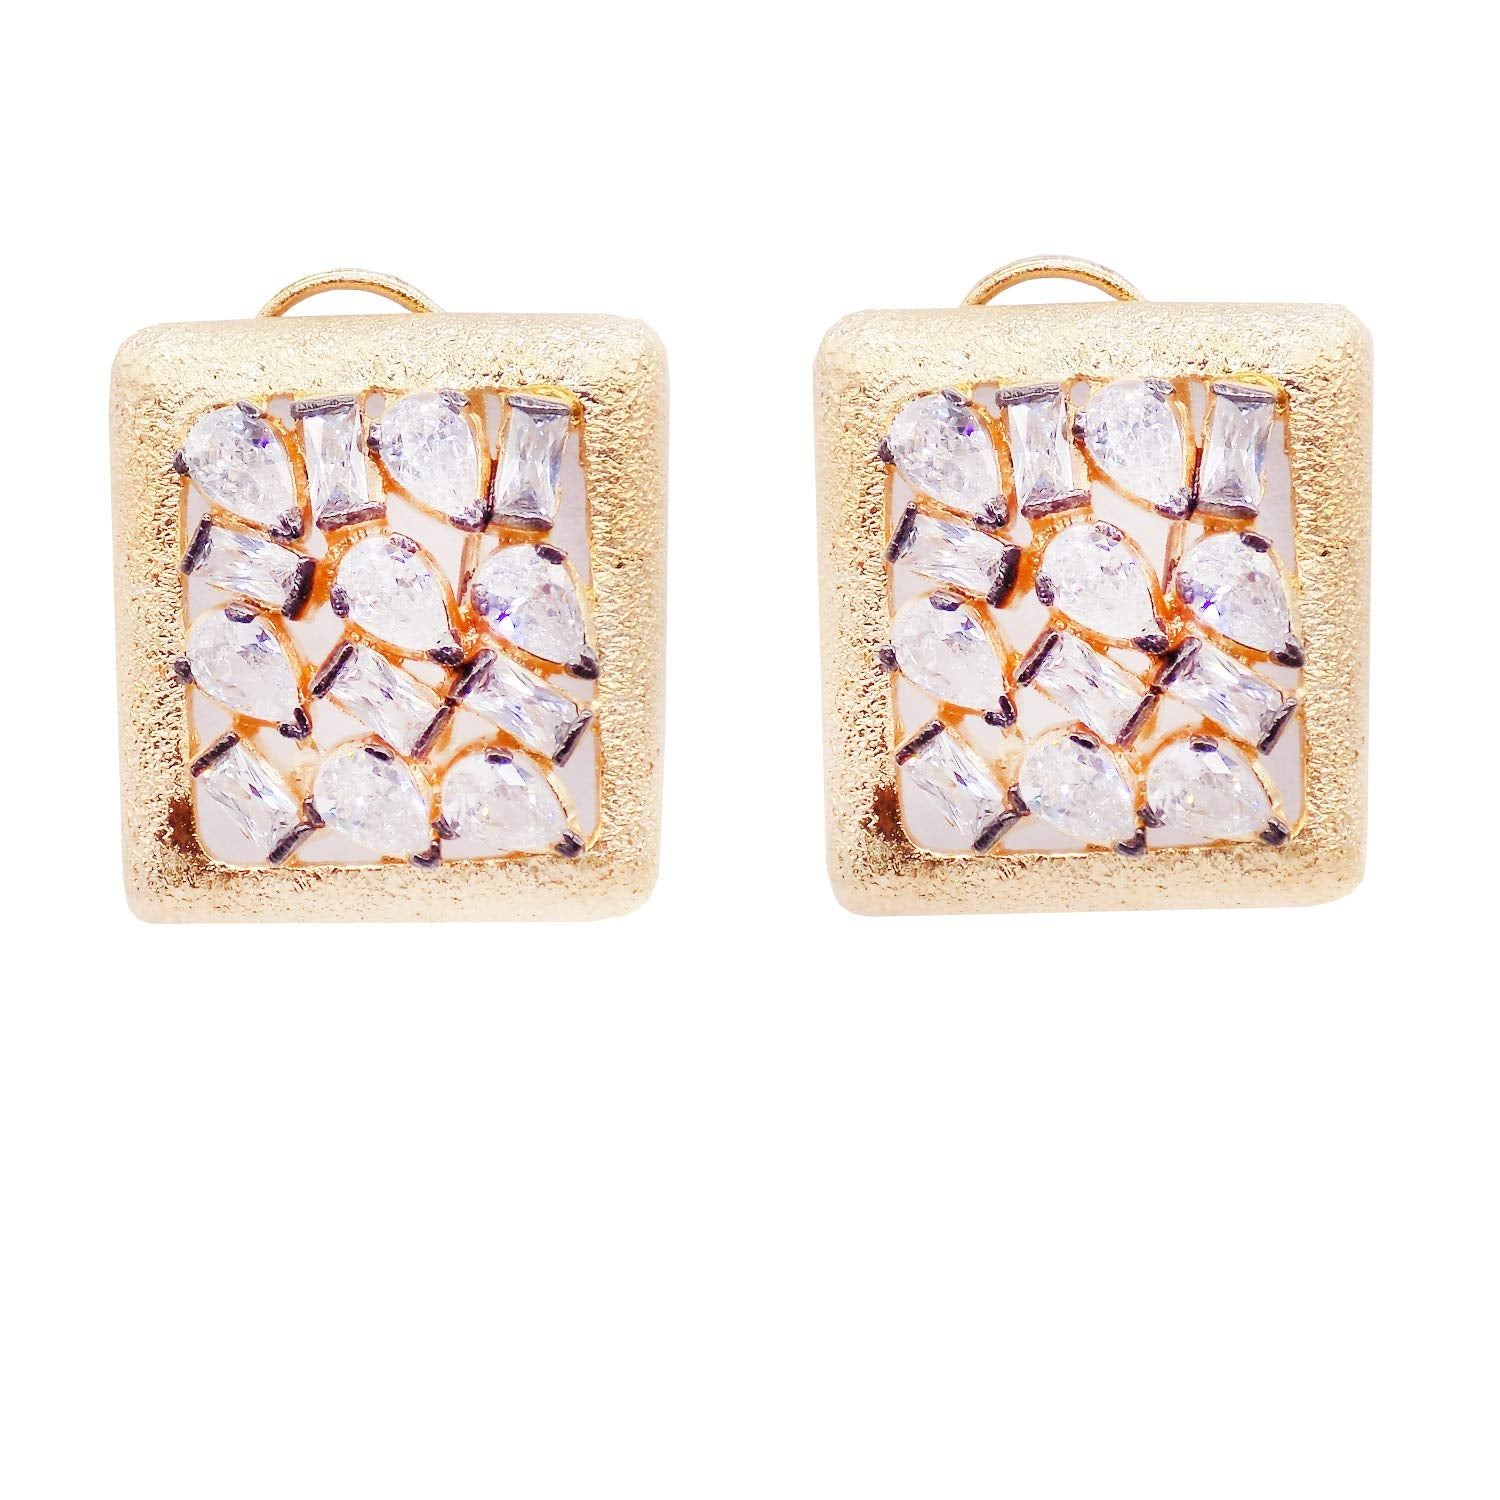 Gold Plated Square Shaped Diamond Stud Earrings - Bagaholics Gift